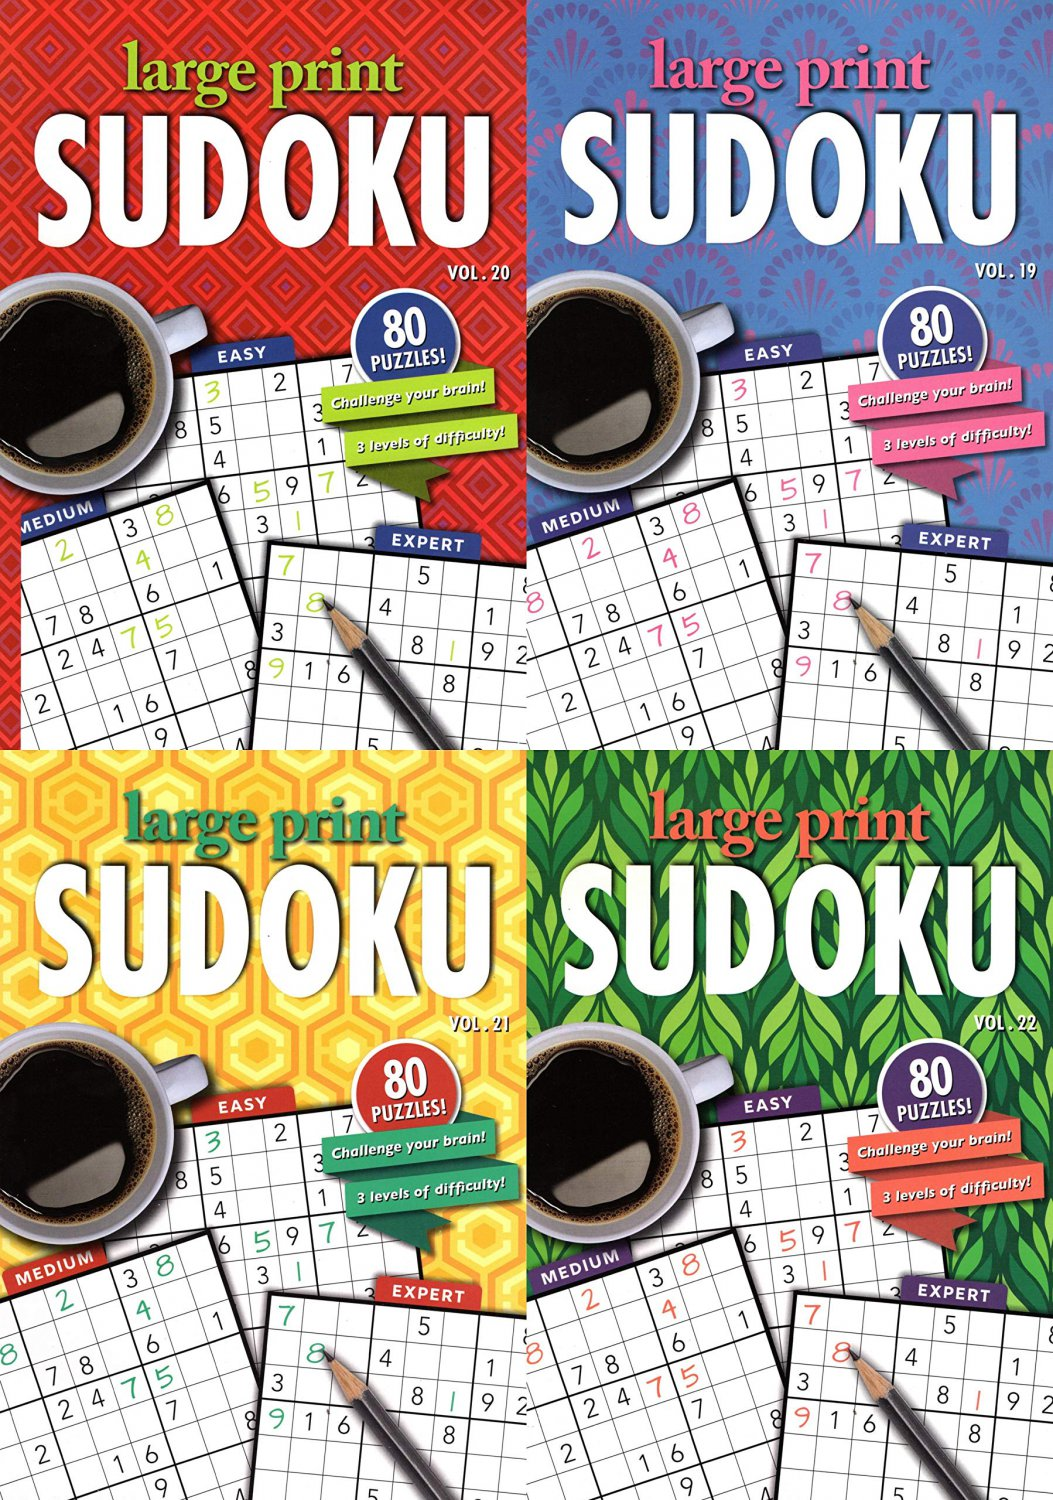 Large Print Sudoku Puzzle - Easy - Medium - Expert - All New Puzzles - Vol.19 - 22 (Set of 4 books)